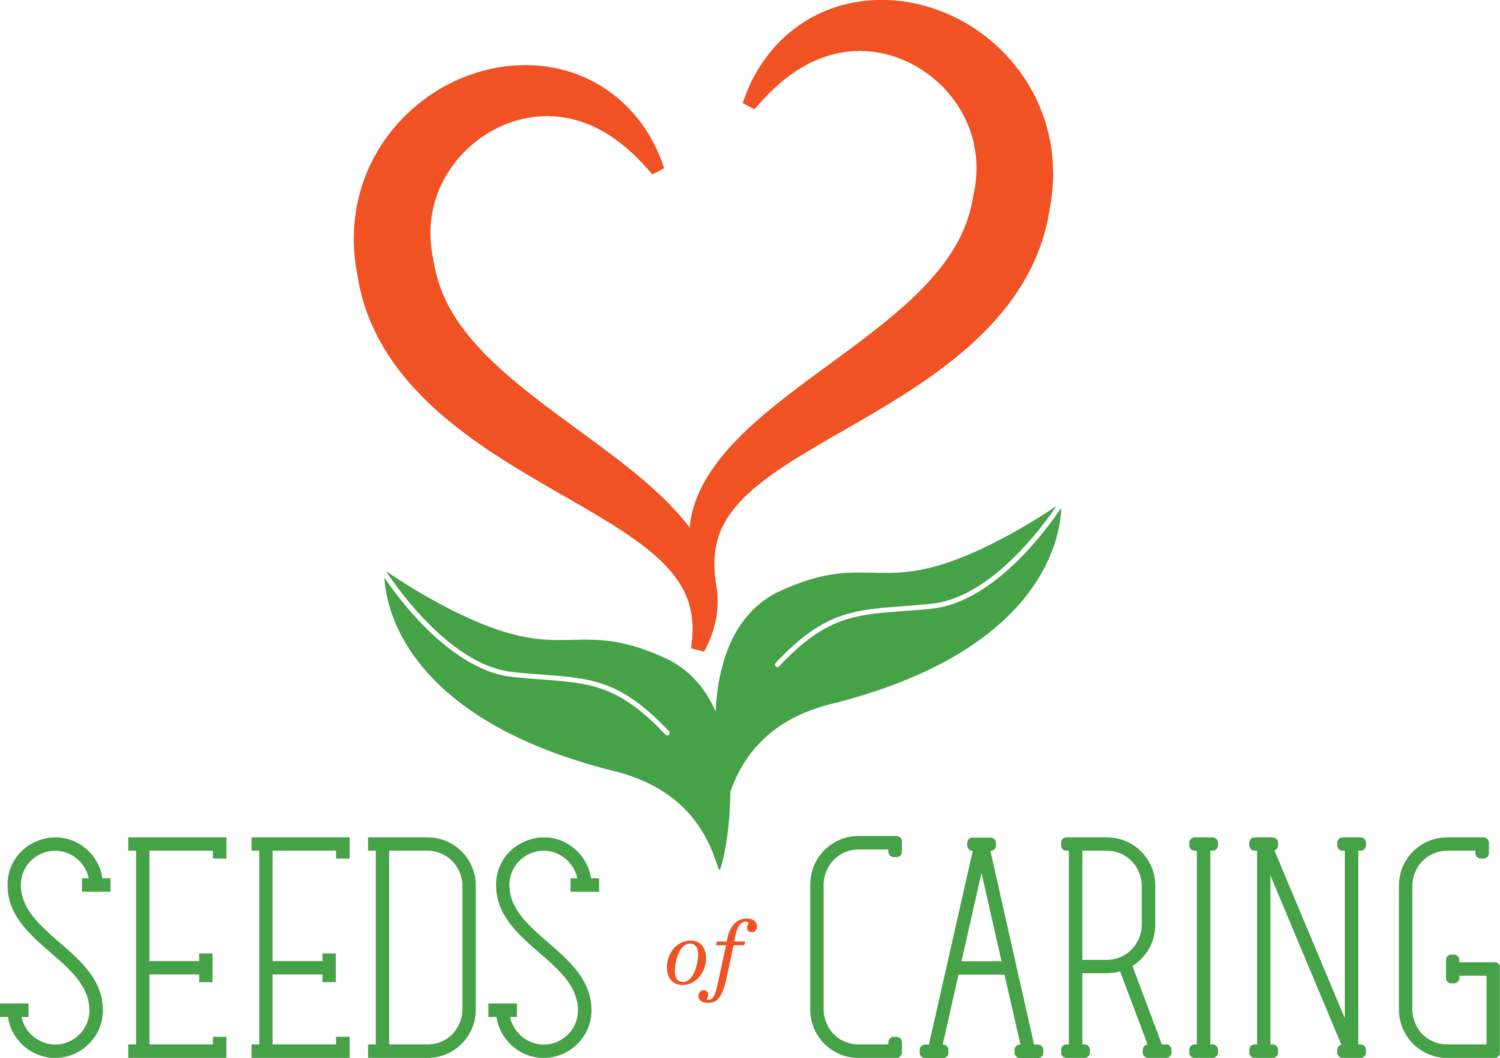 Seeds of Caring